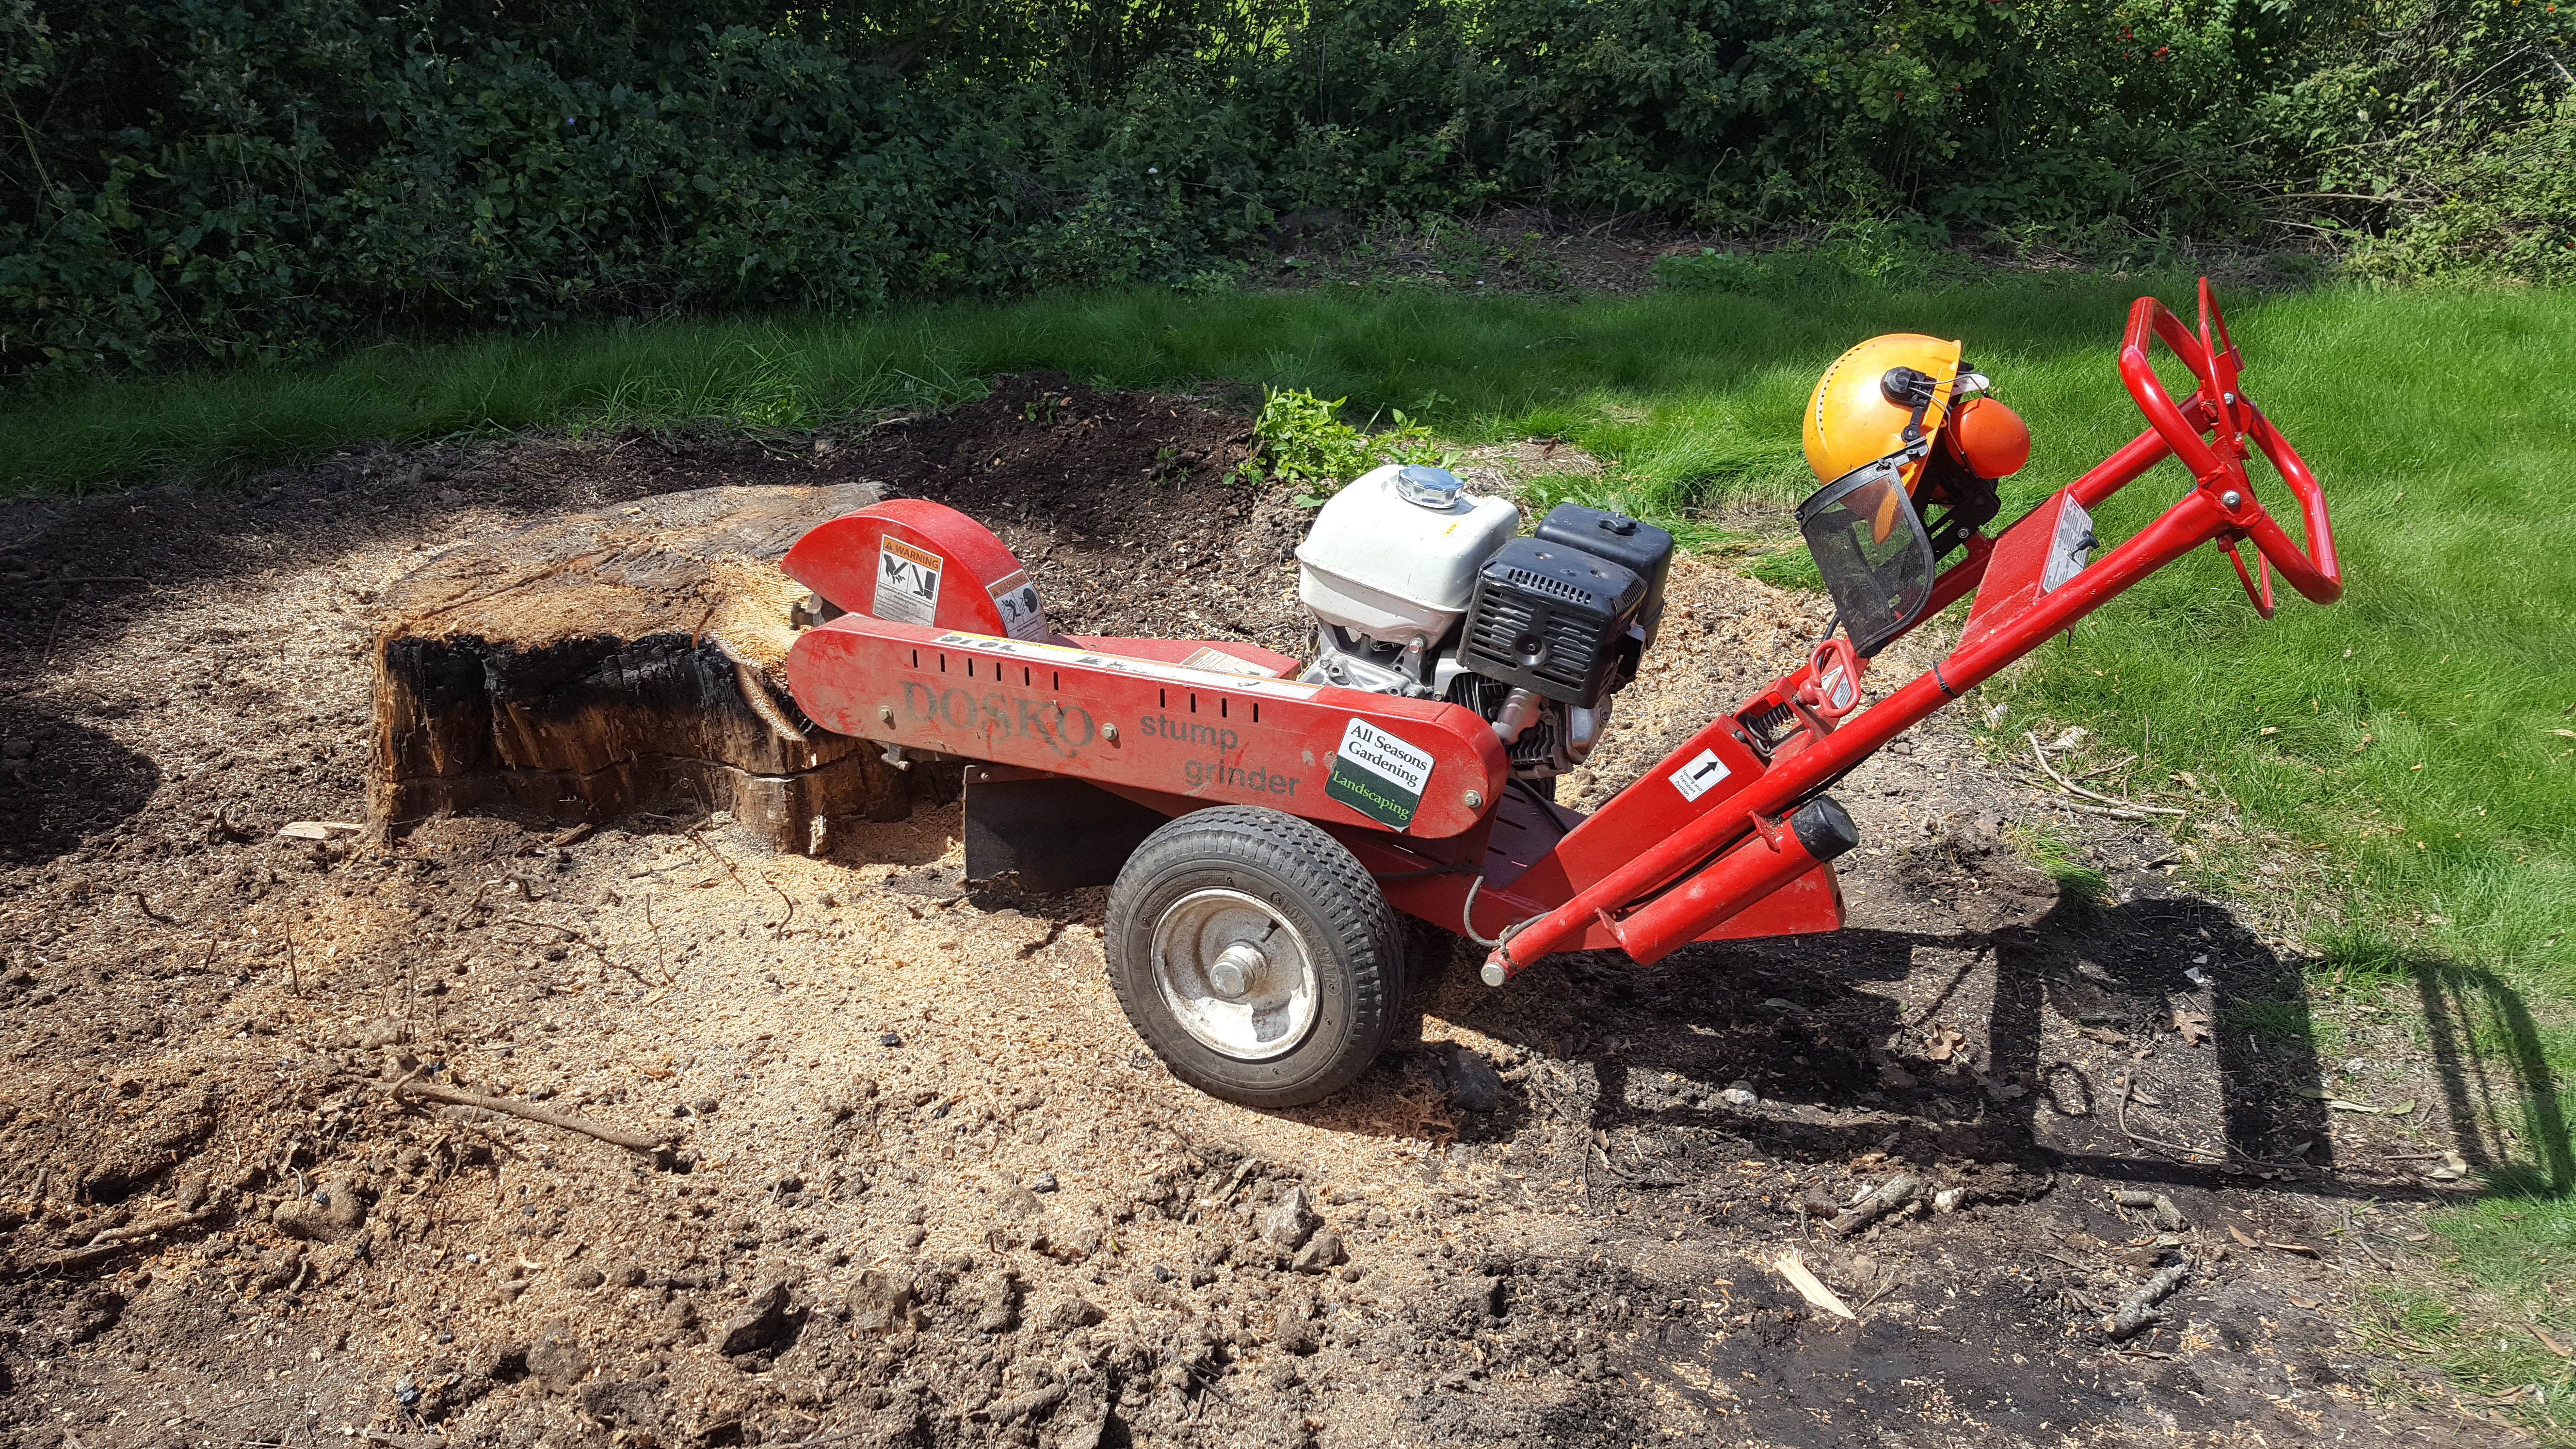 Isle of wight gardening equipment hire iow gardeners for Gardening tools for hire